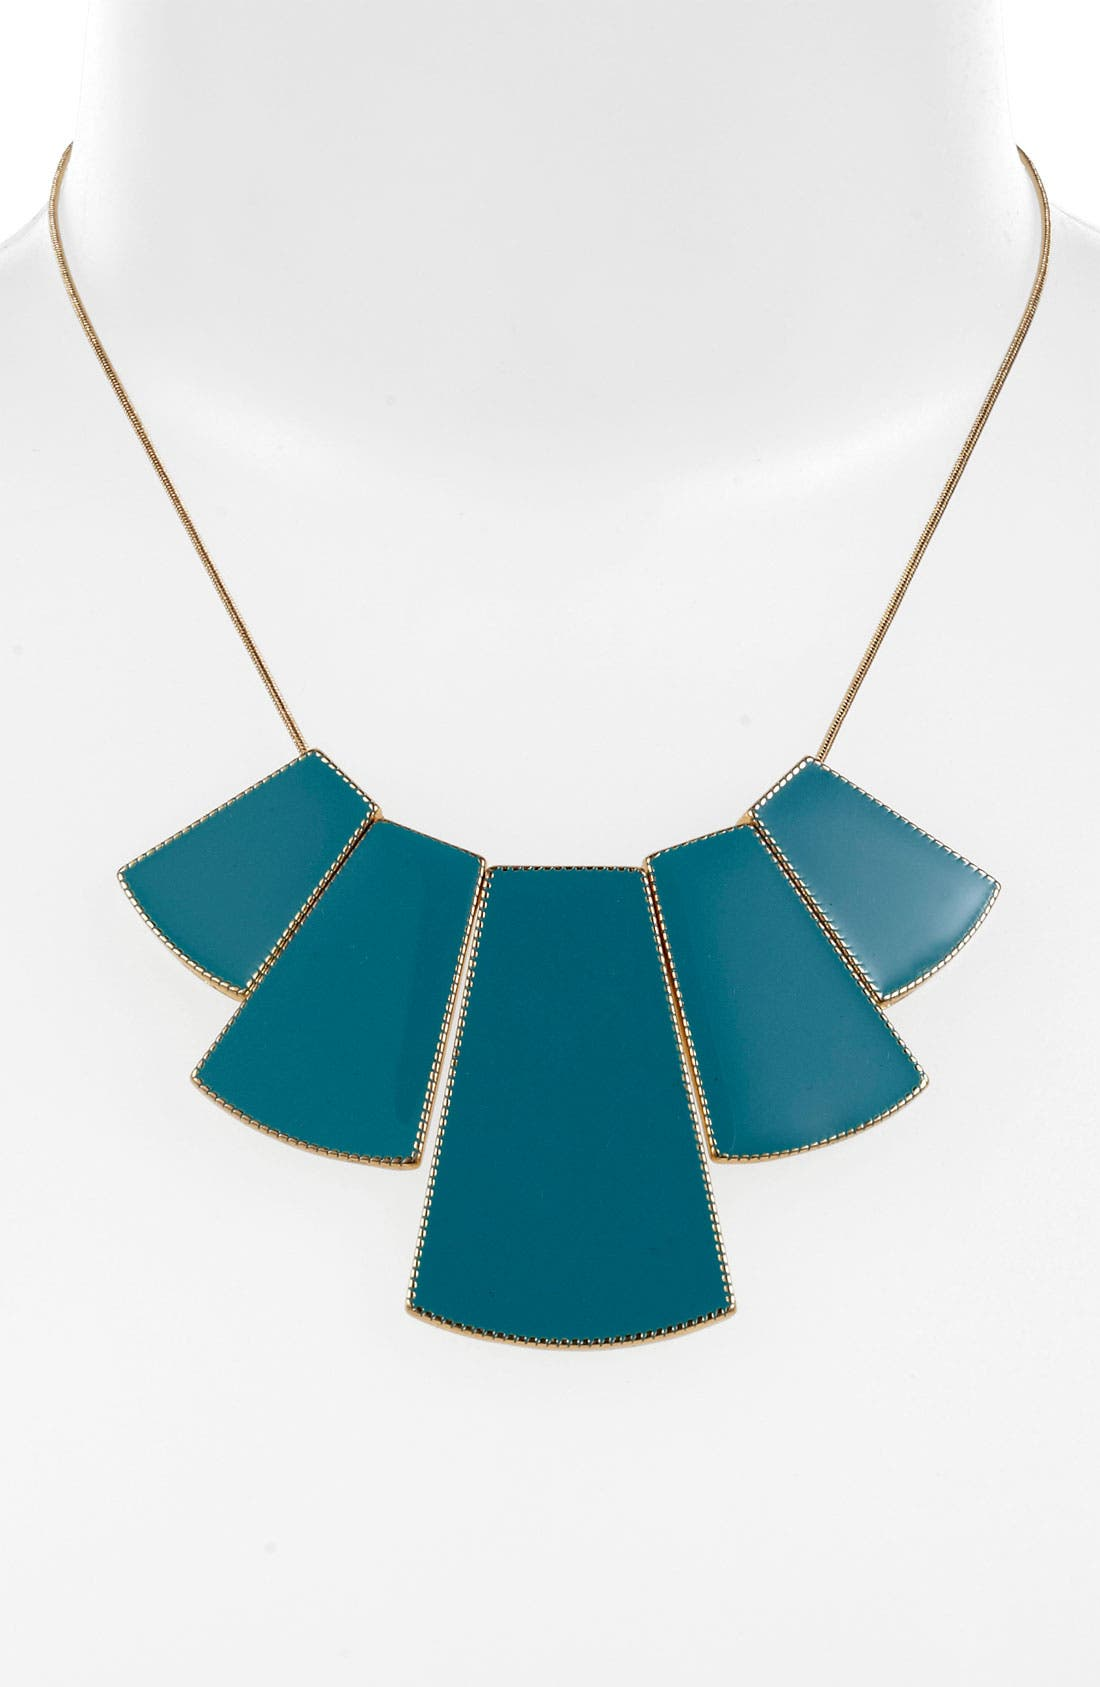 Main Image - Carole Enamel Bib Necklace